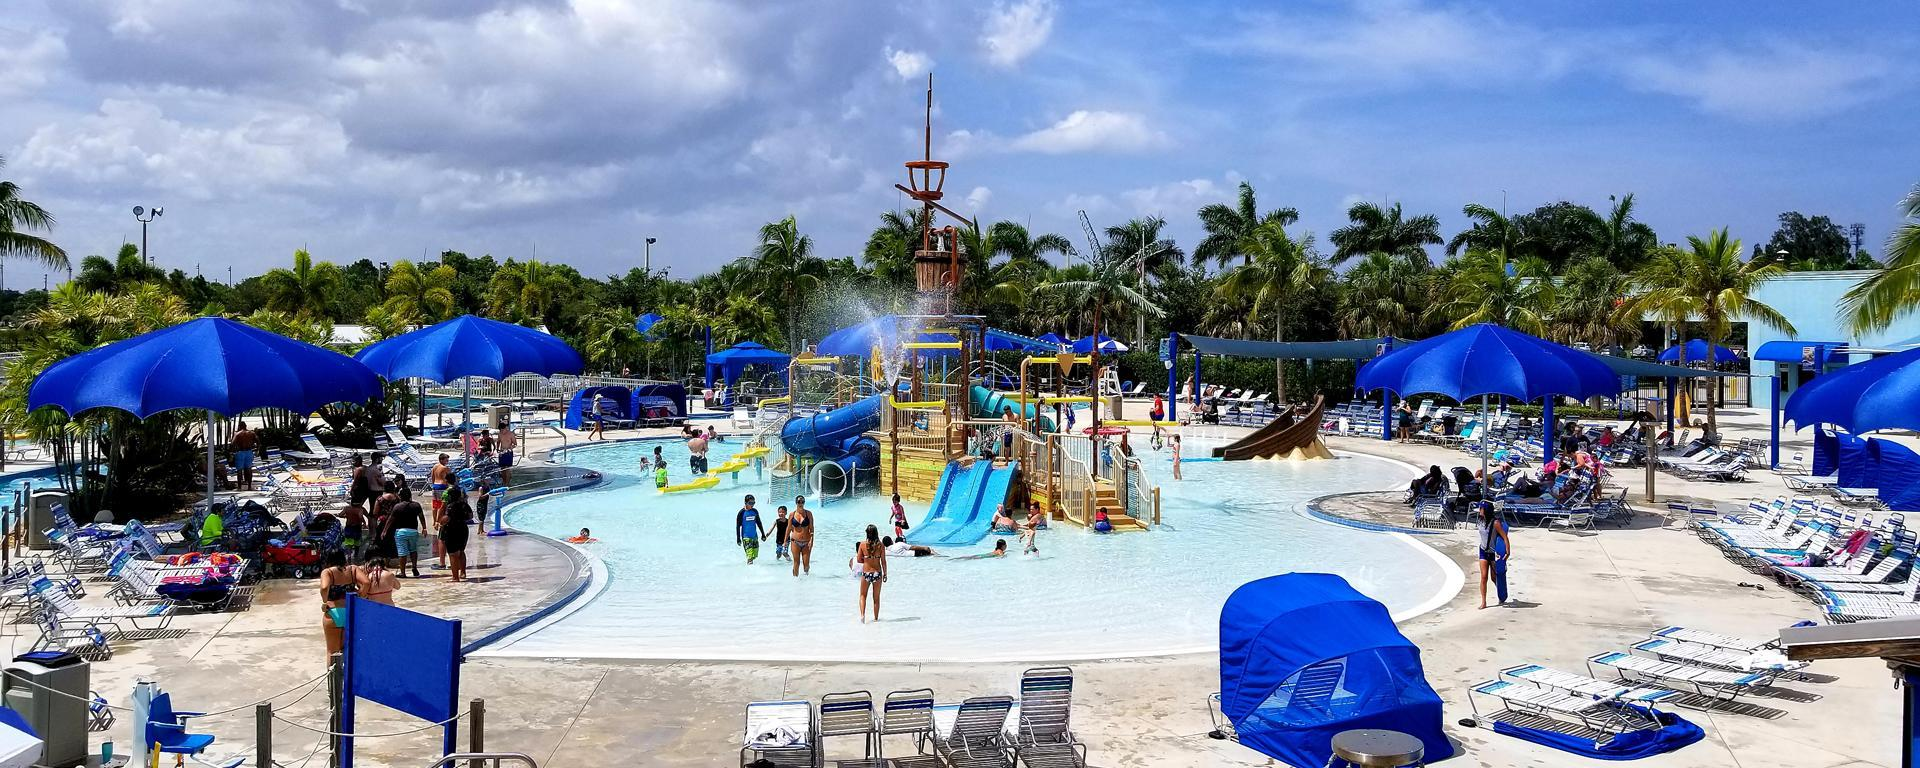 Playground at Sailfish Splash Waterpark